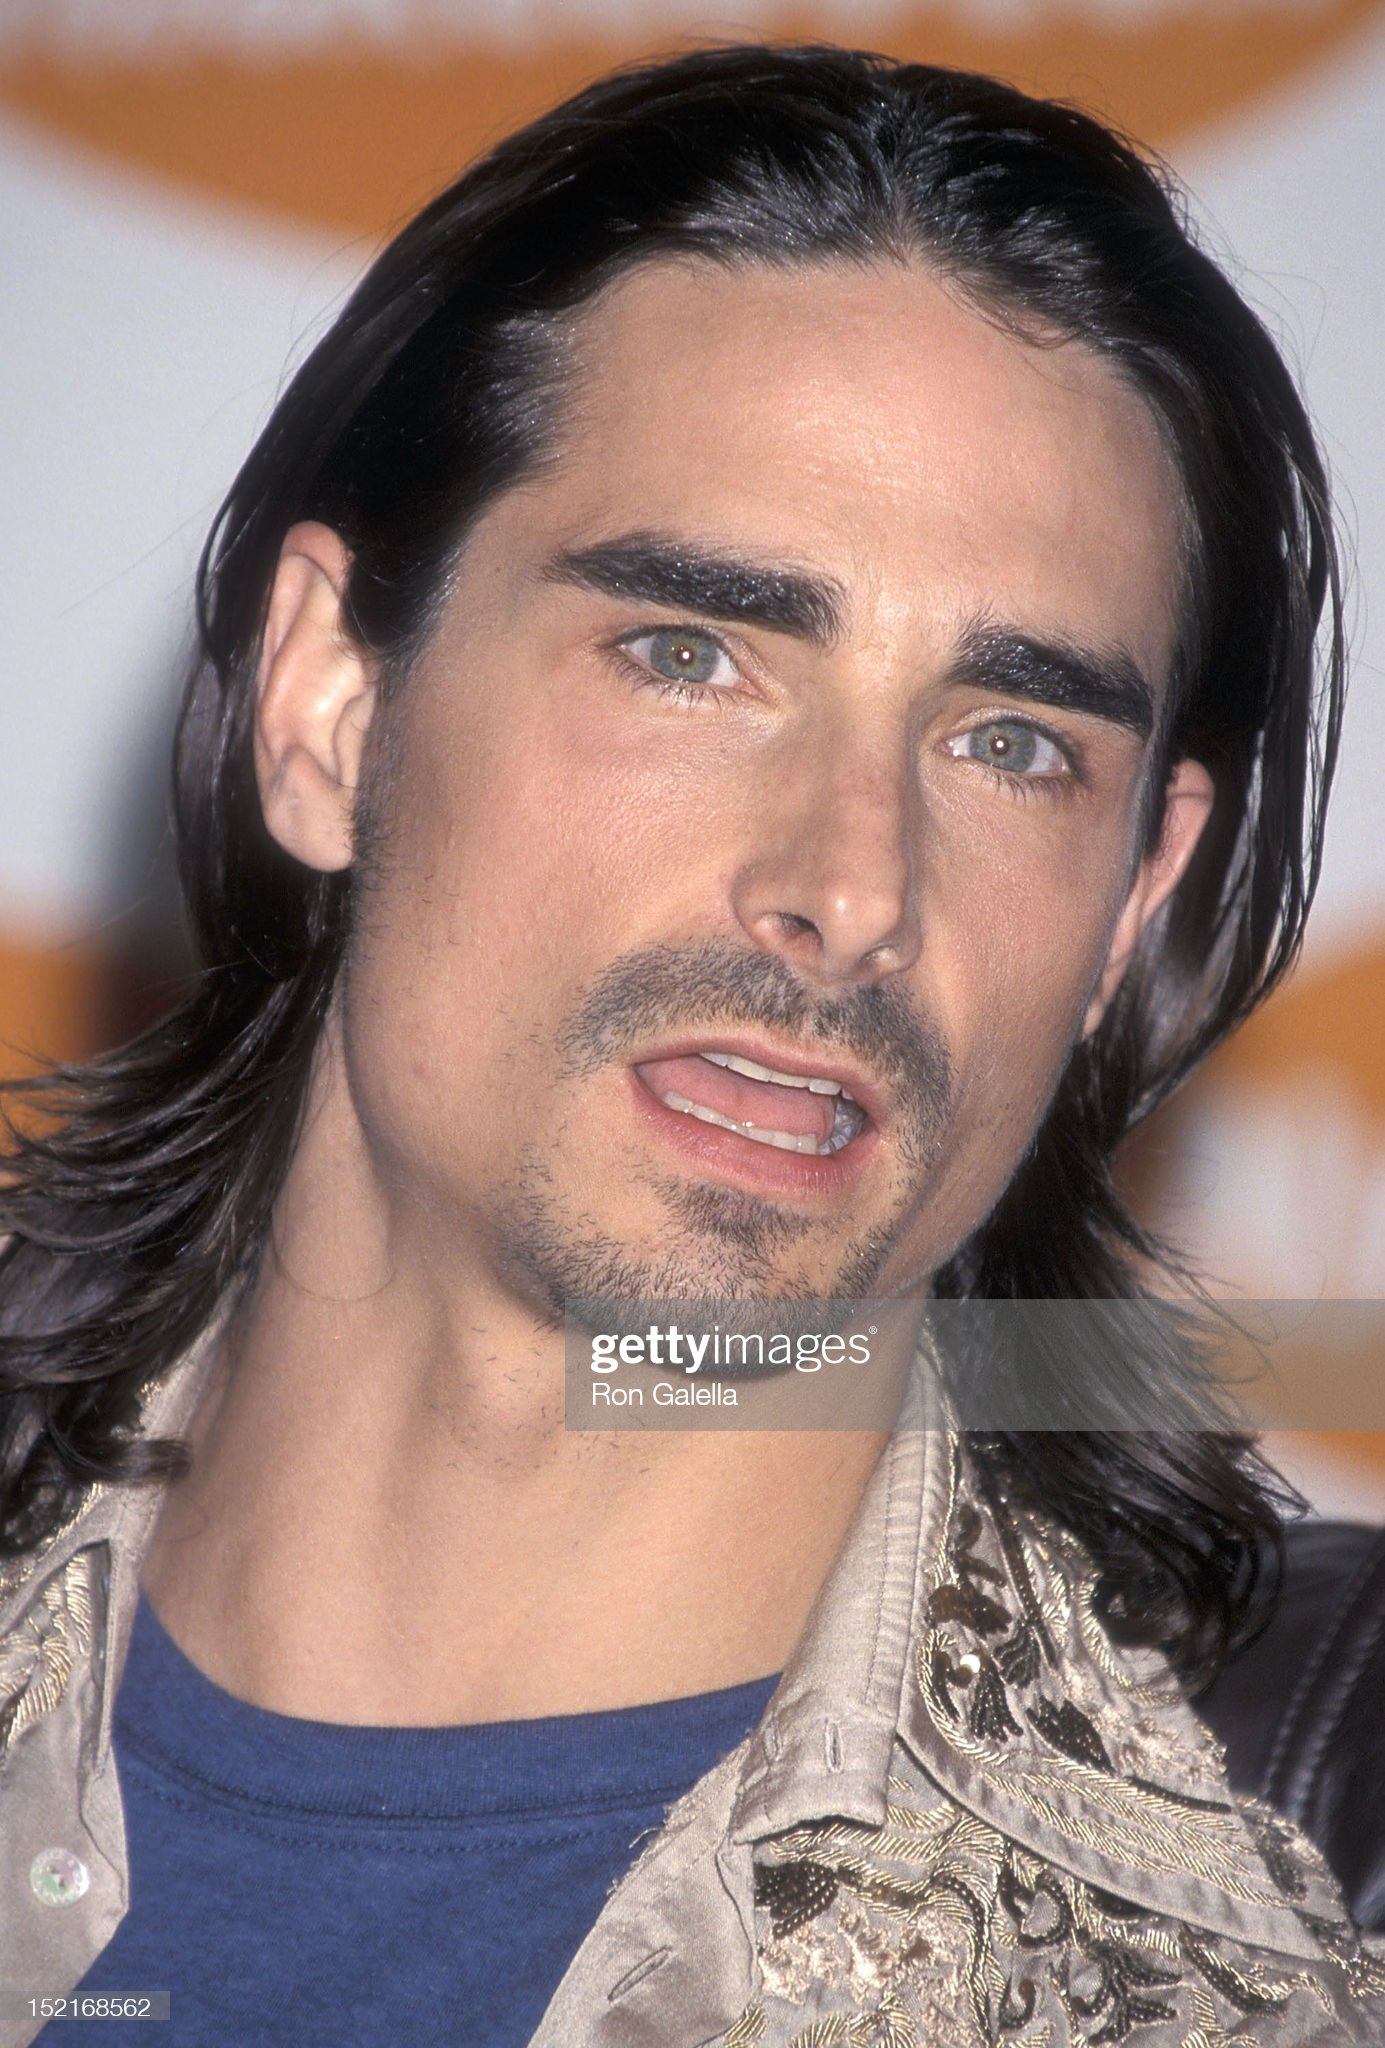 Ojos verdes - Famosas y famosos con los ojos de color VERDE Singer-kevin-richardson-of-the-backstreet-boys-attends-the-14th-picture-id152168562?s=2048x2048